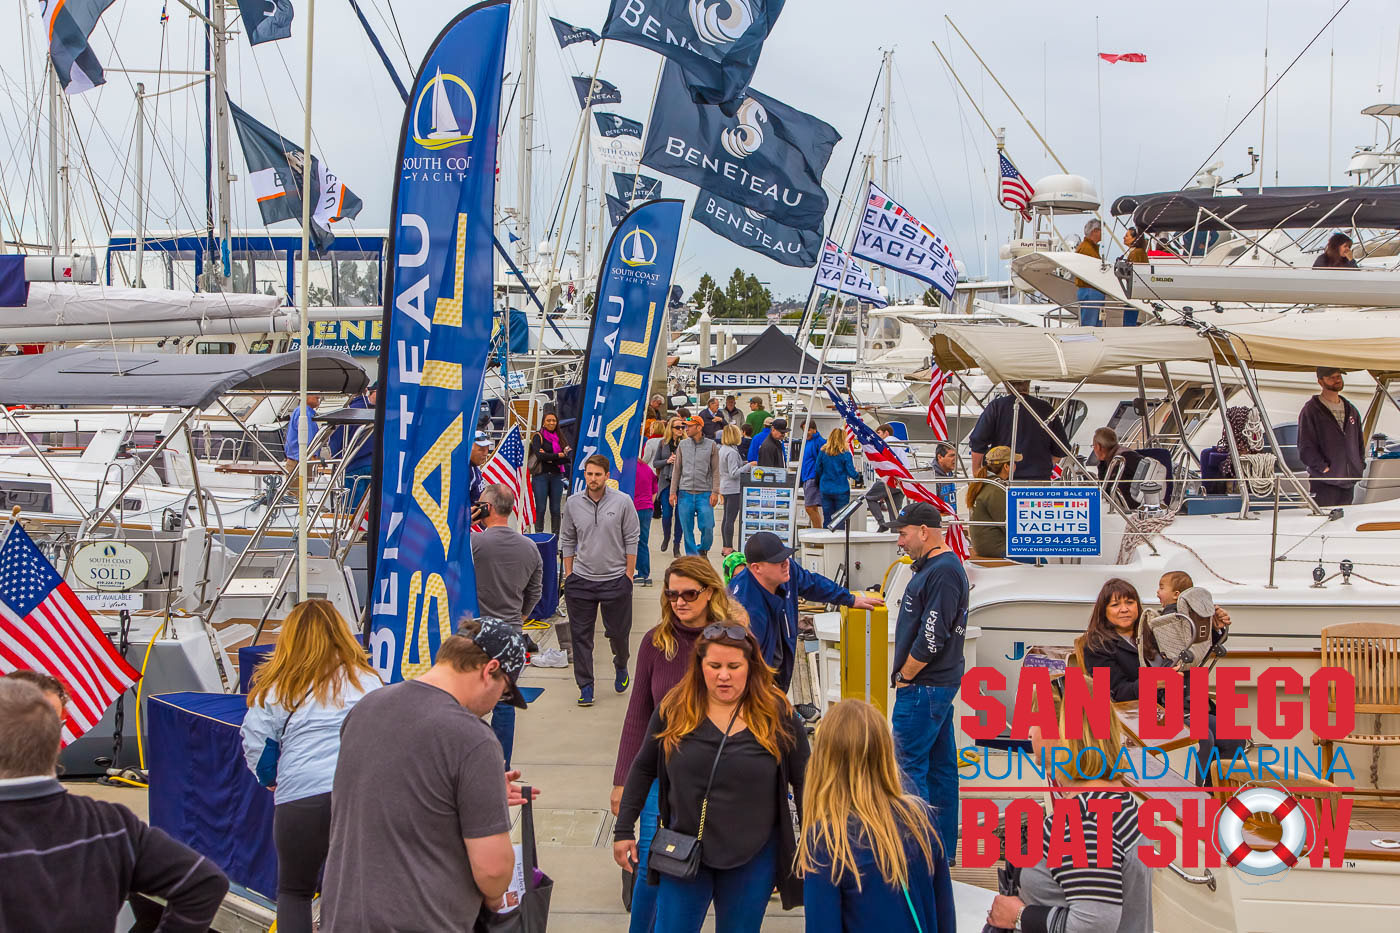 MED_SunroadBoatShow2016-8 copy